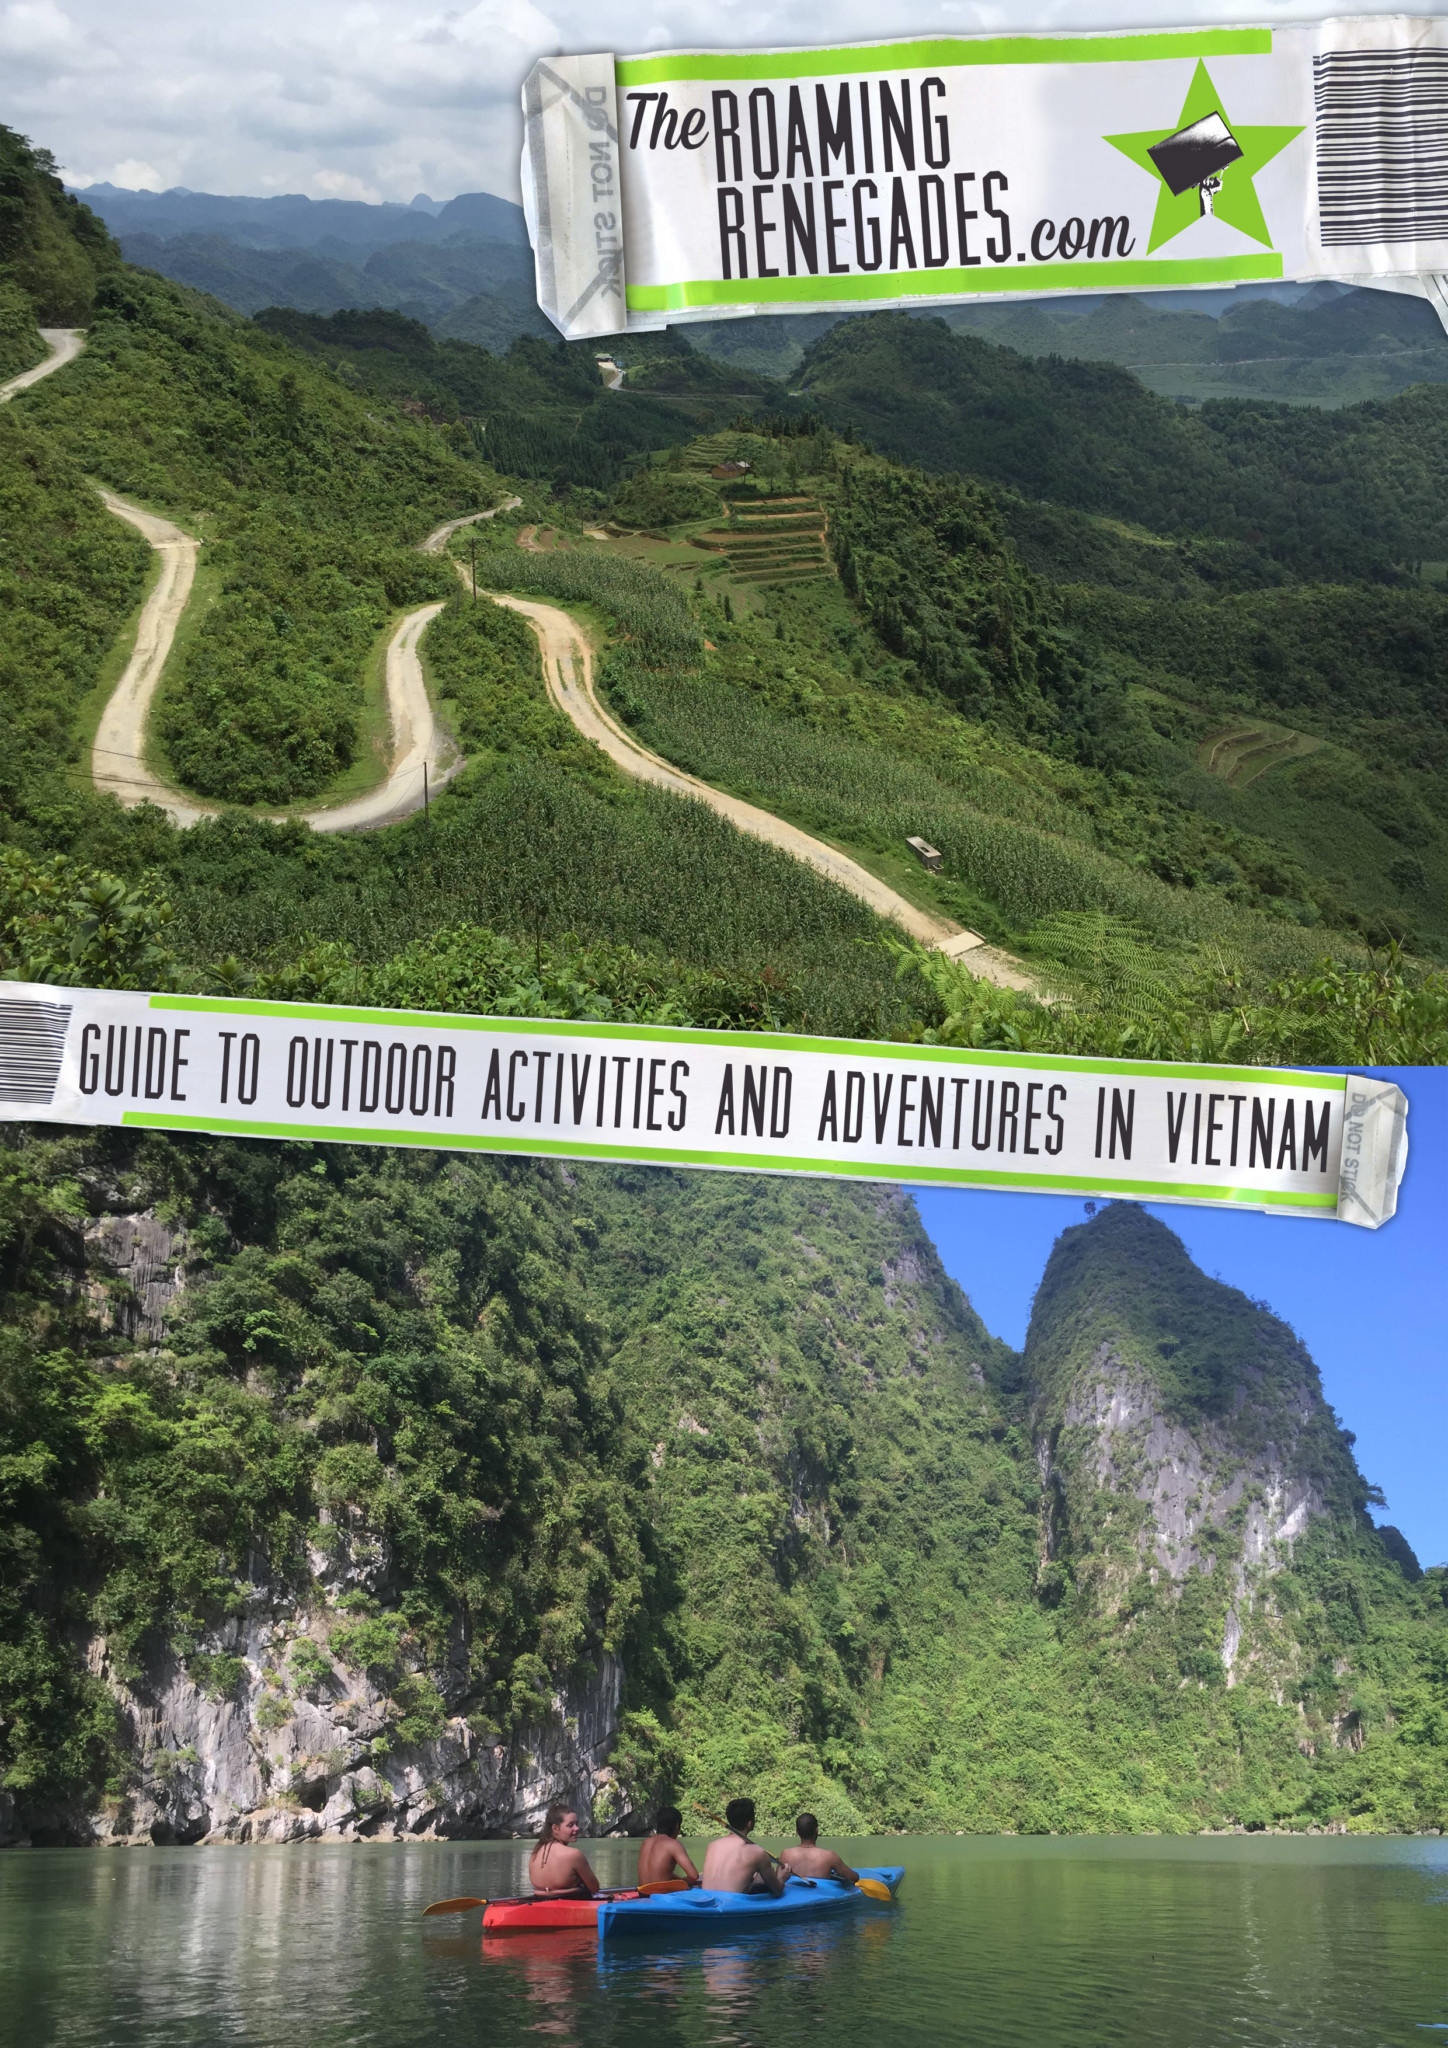 GUEST POST: 26 Year old's Guide to Outdoor Activities and Adventures in Vietnam > http://theroamingrenegades.com/2016/08/guest-post-26-year-olds-guide-to-outdoor-activities-and-adventures-in-vietnam.html